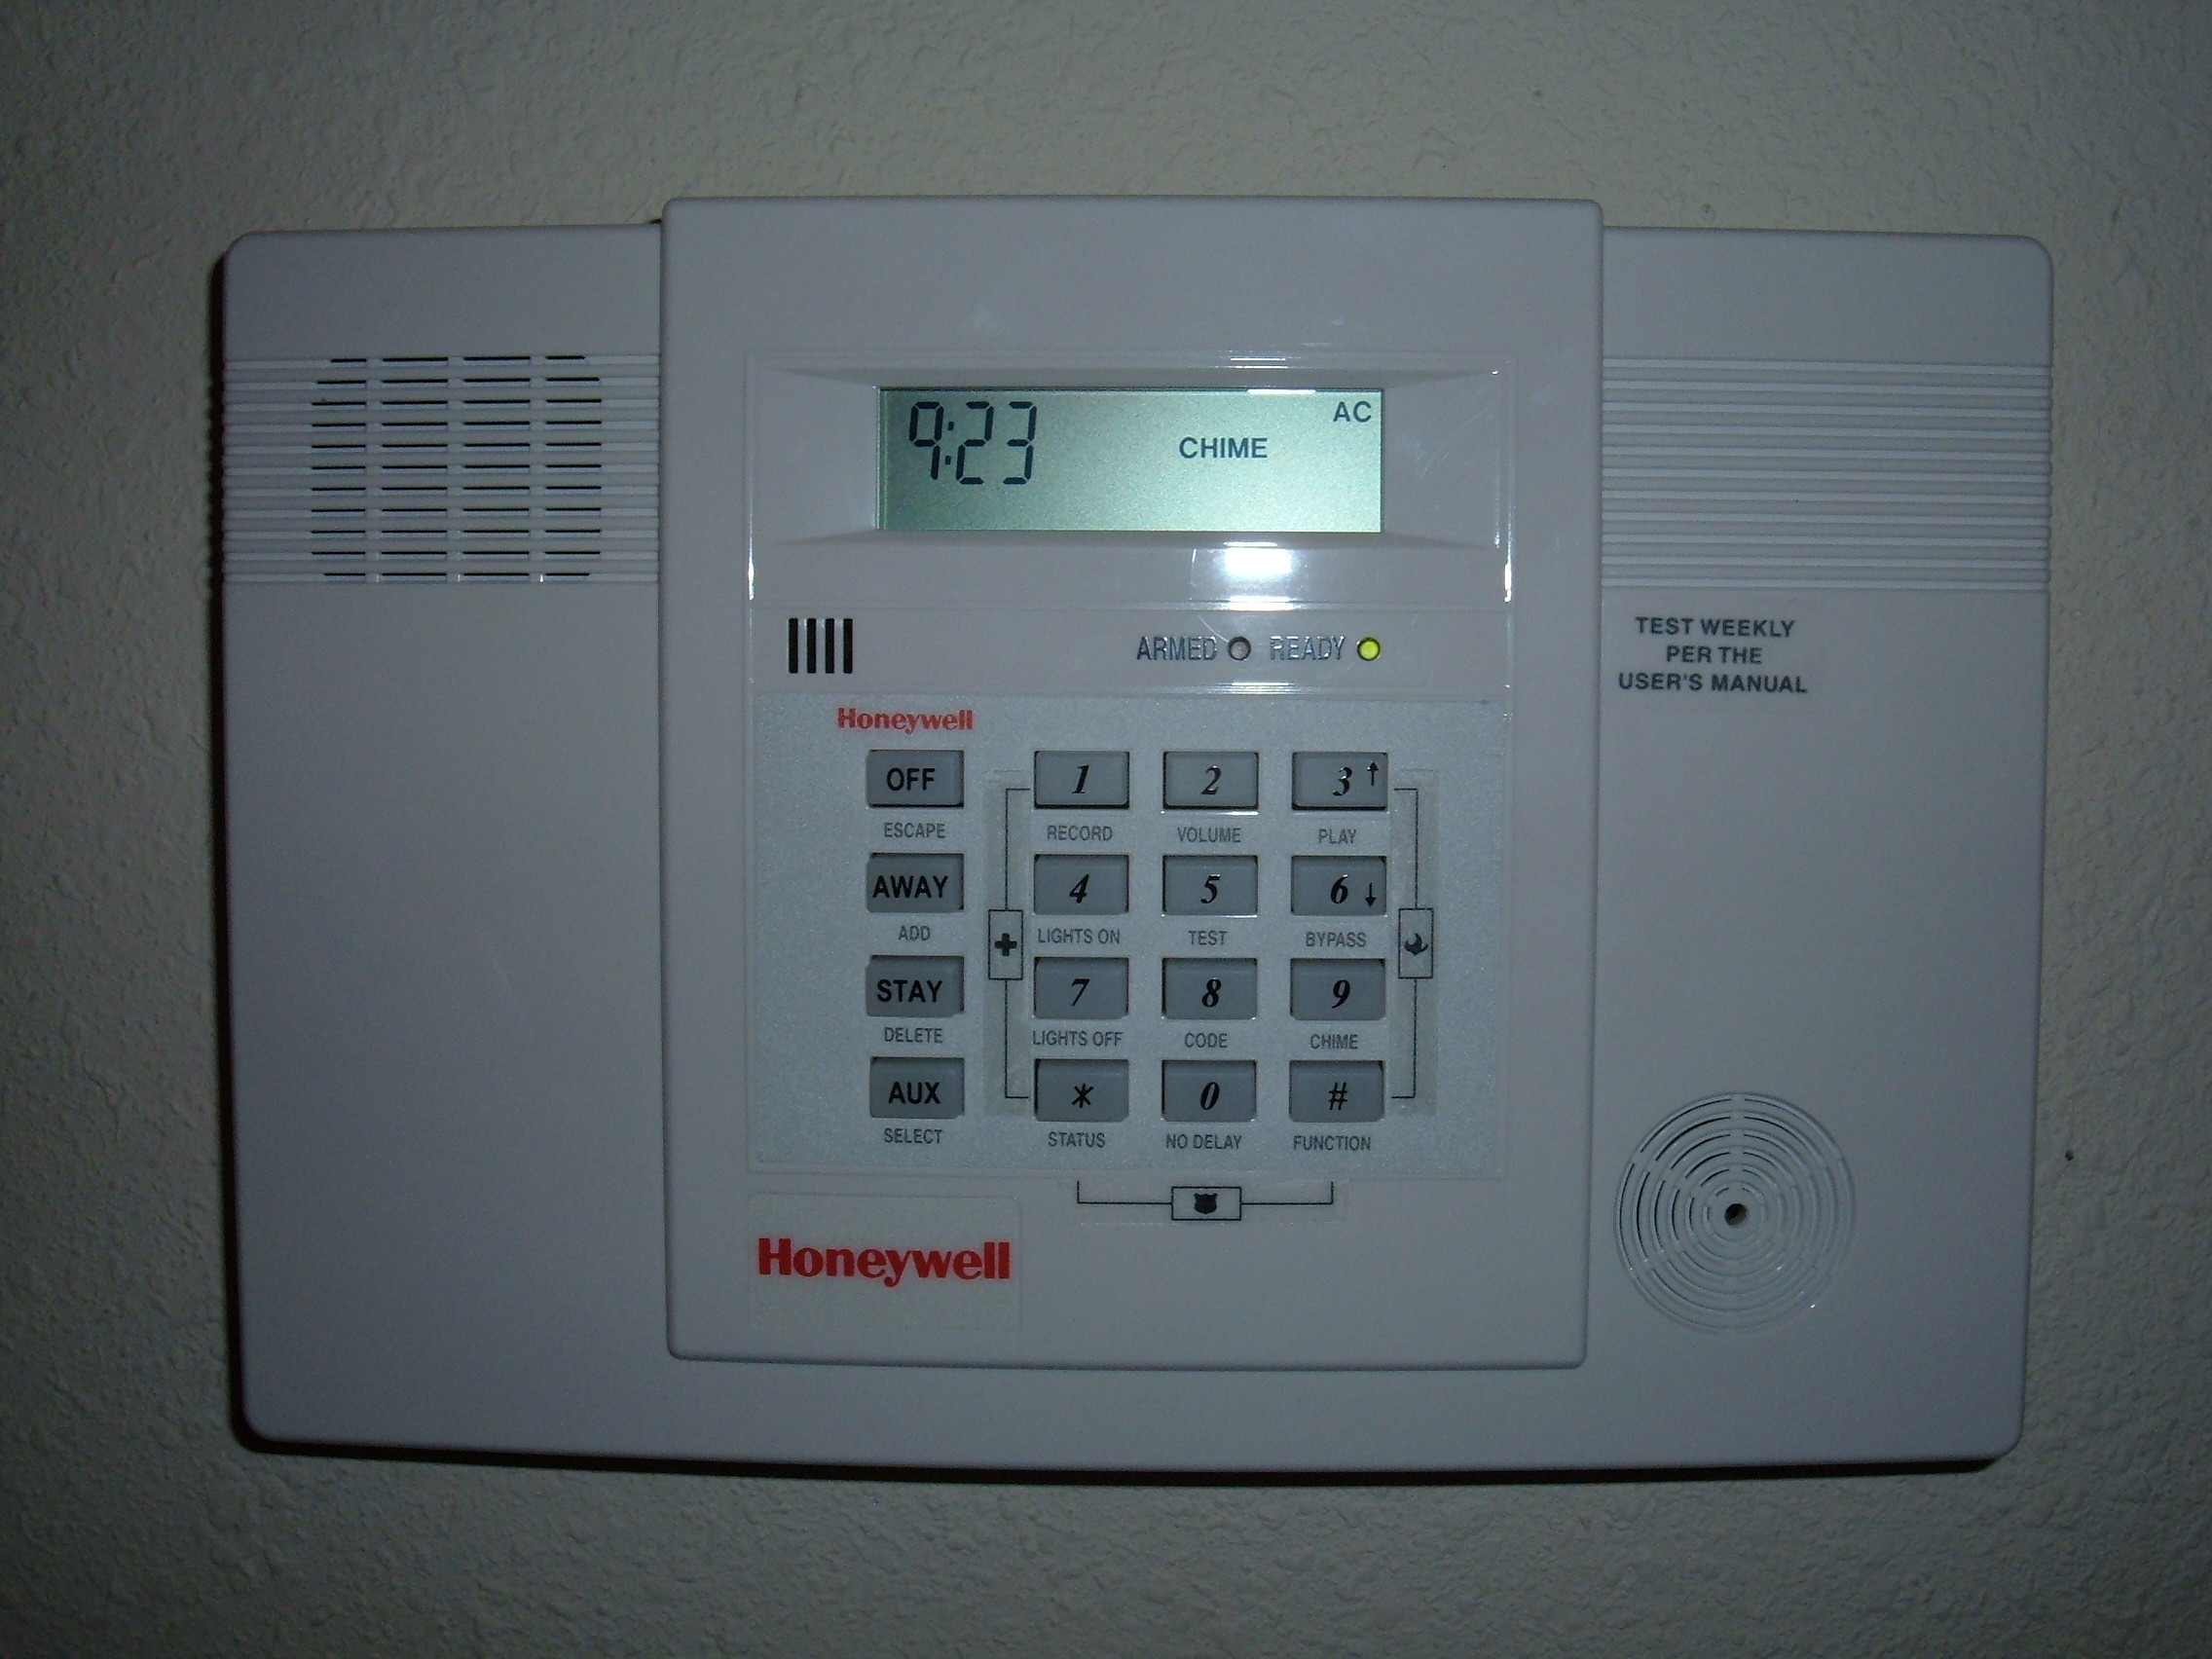 File:Honeywell home alarm JPG - Wikimedia Commons